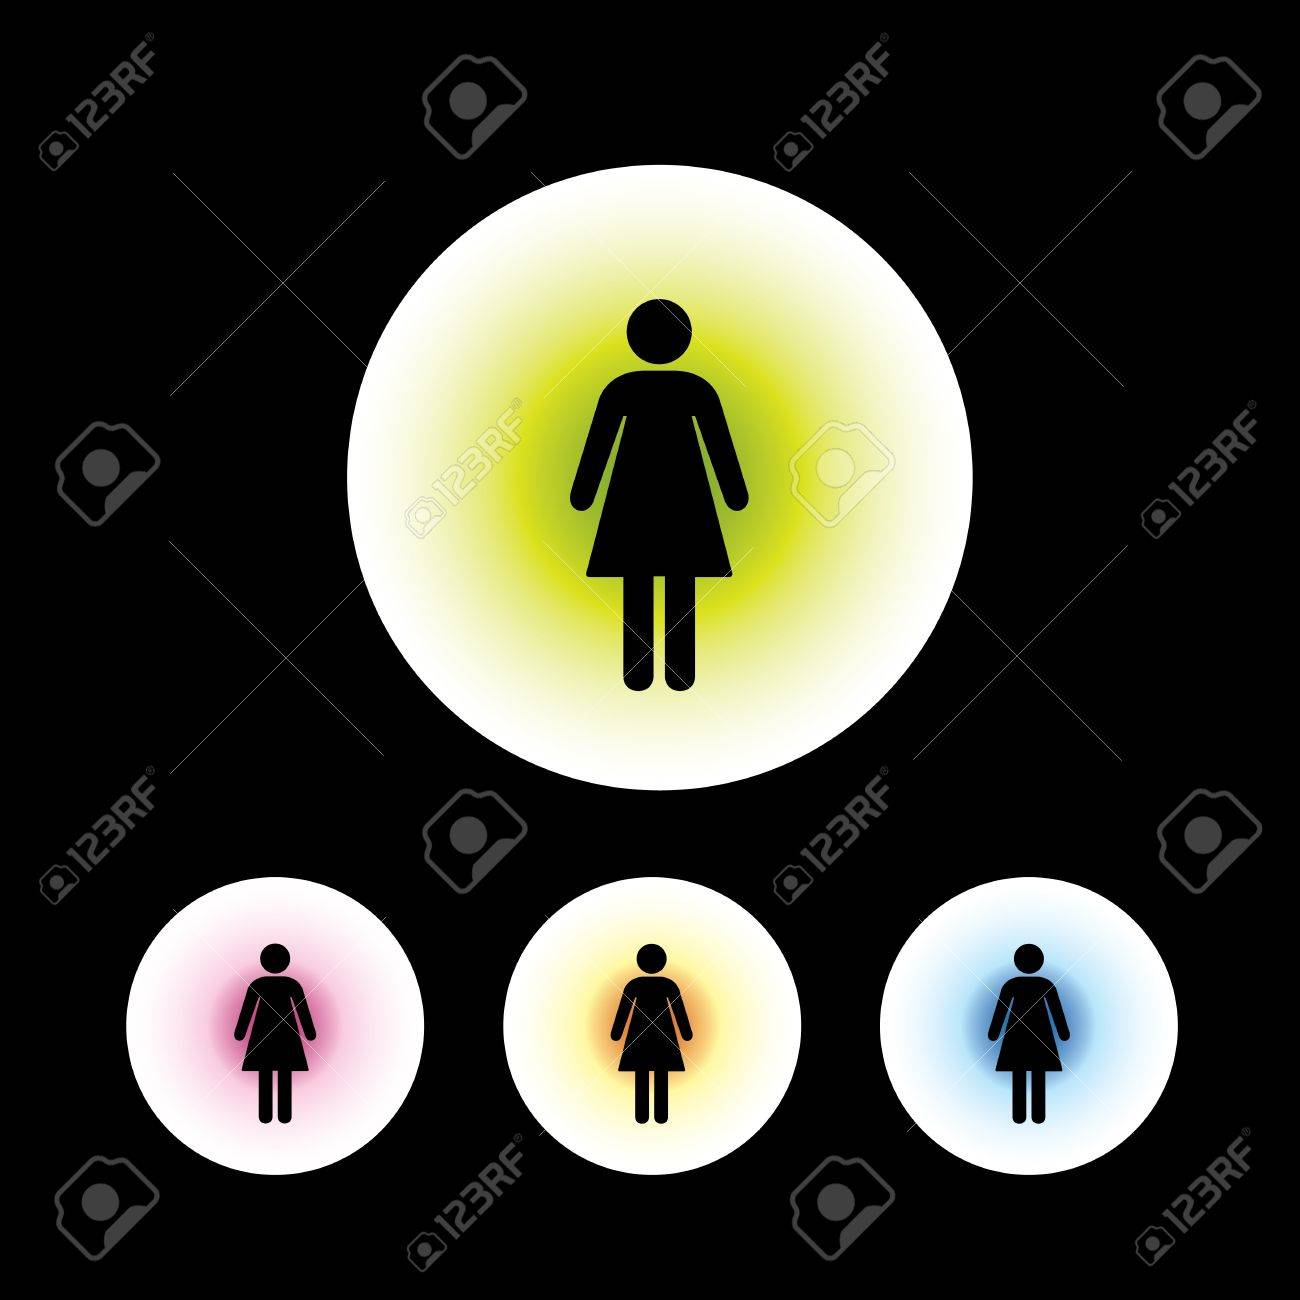 icon set in black background for use Stock Vector - 20864124